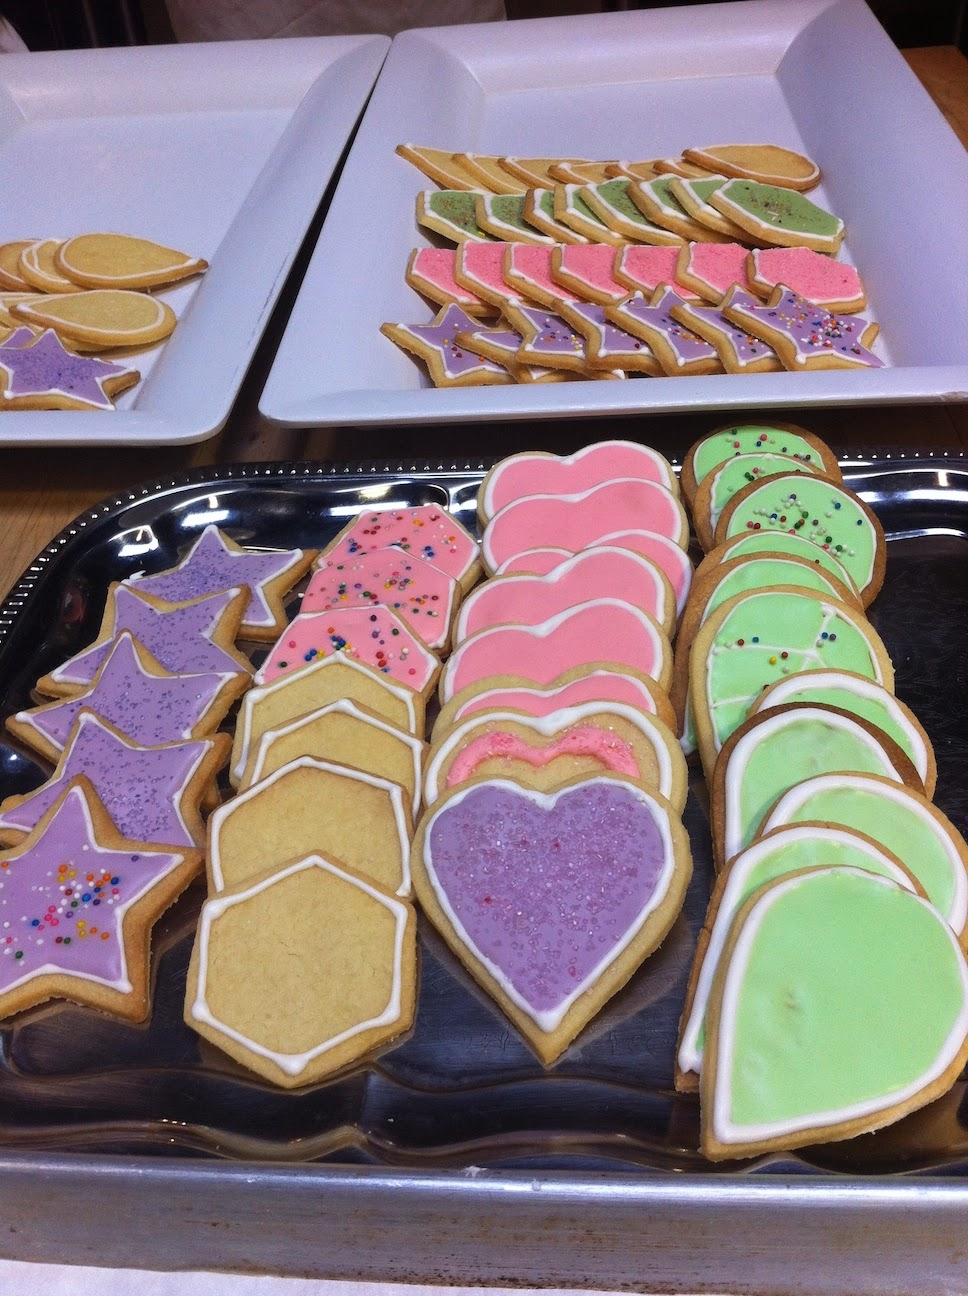 Cookies on a table.